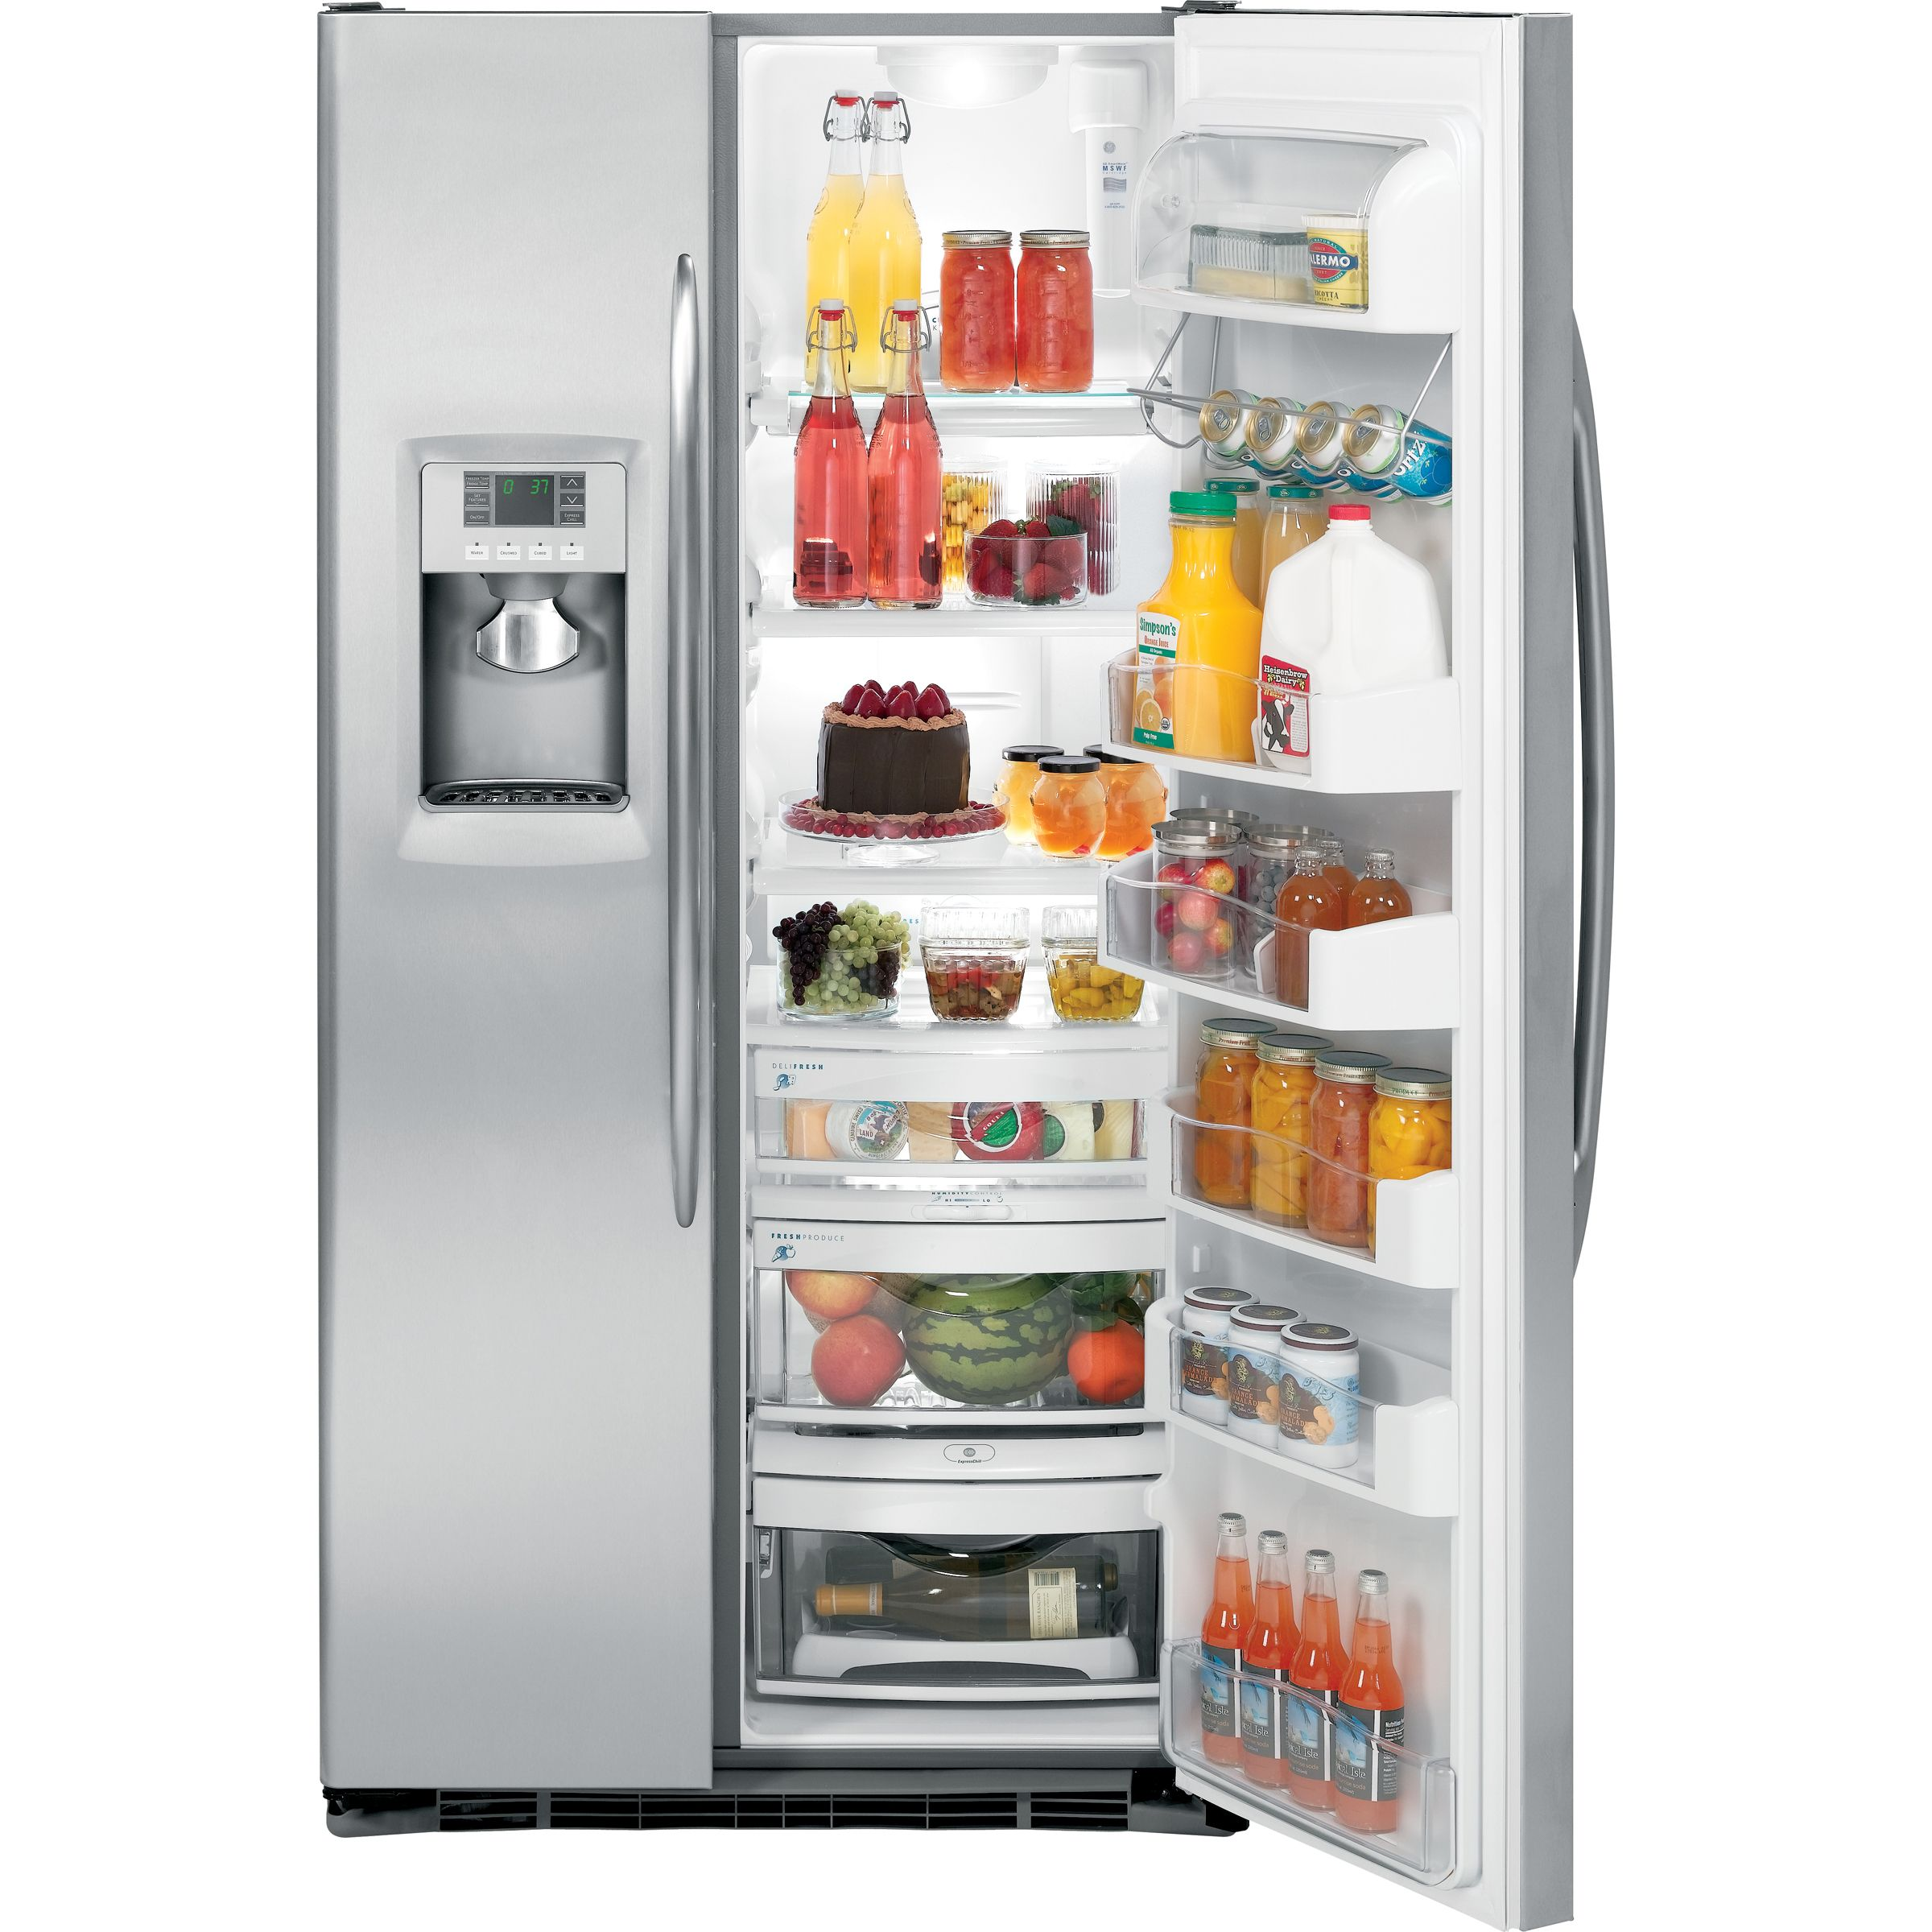 GE 24.6 cu. ft. Counter Depth Side-By-Side Refrigerator